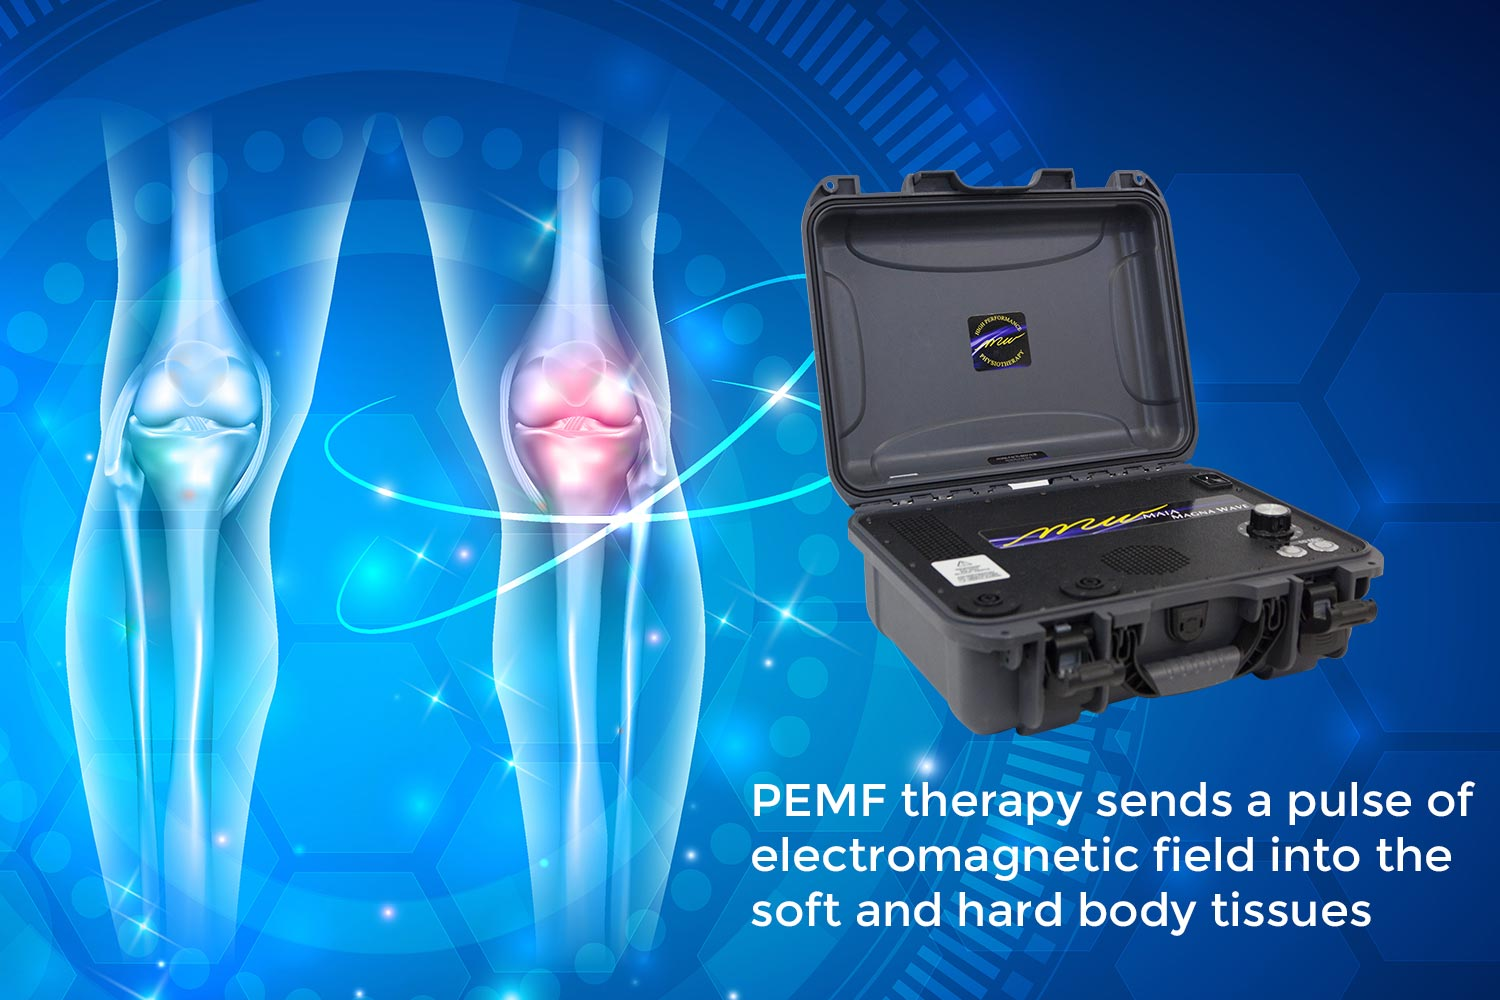 PEMF therapy sends a pulse of electromagnetic field into the soft and hard body tissues.